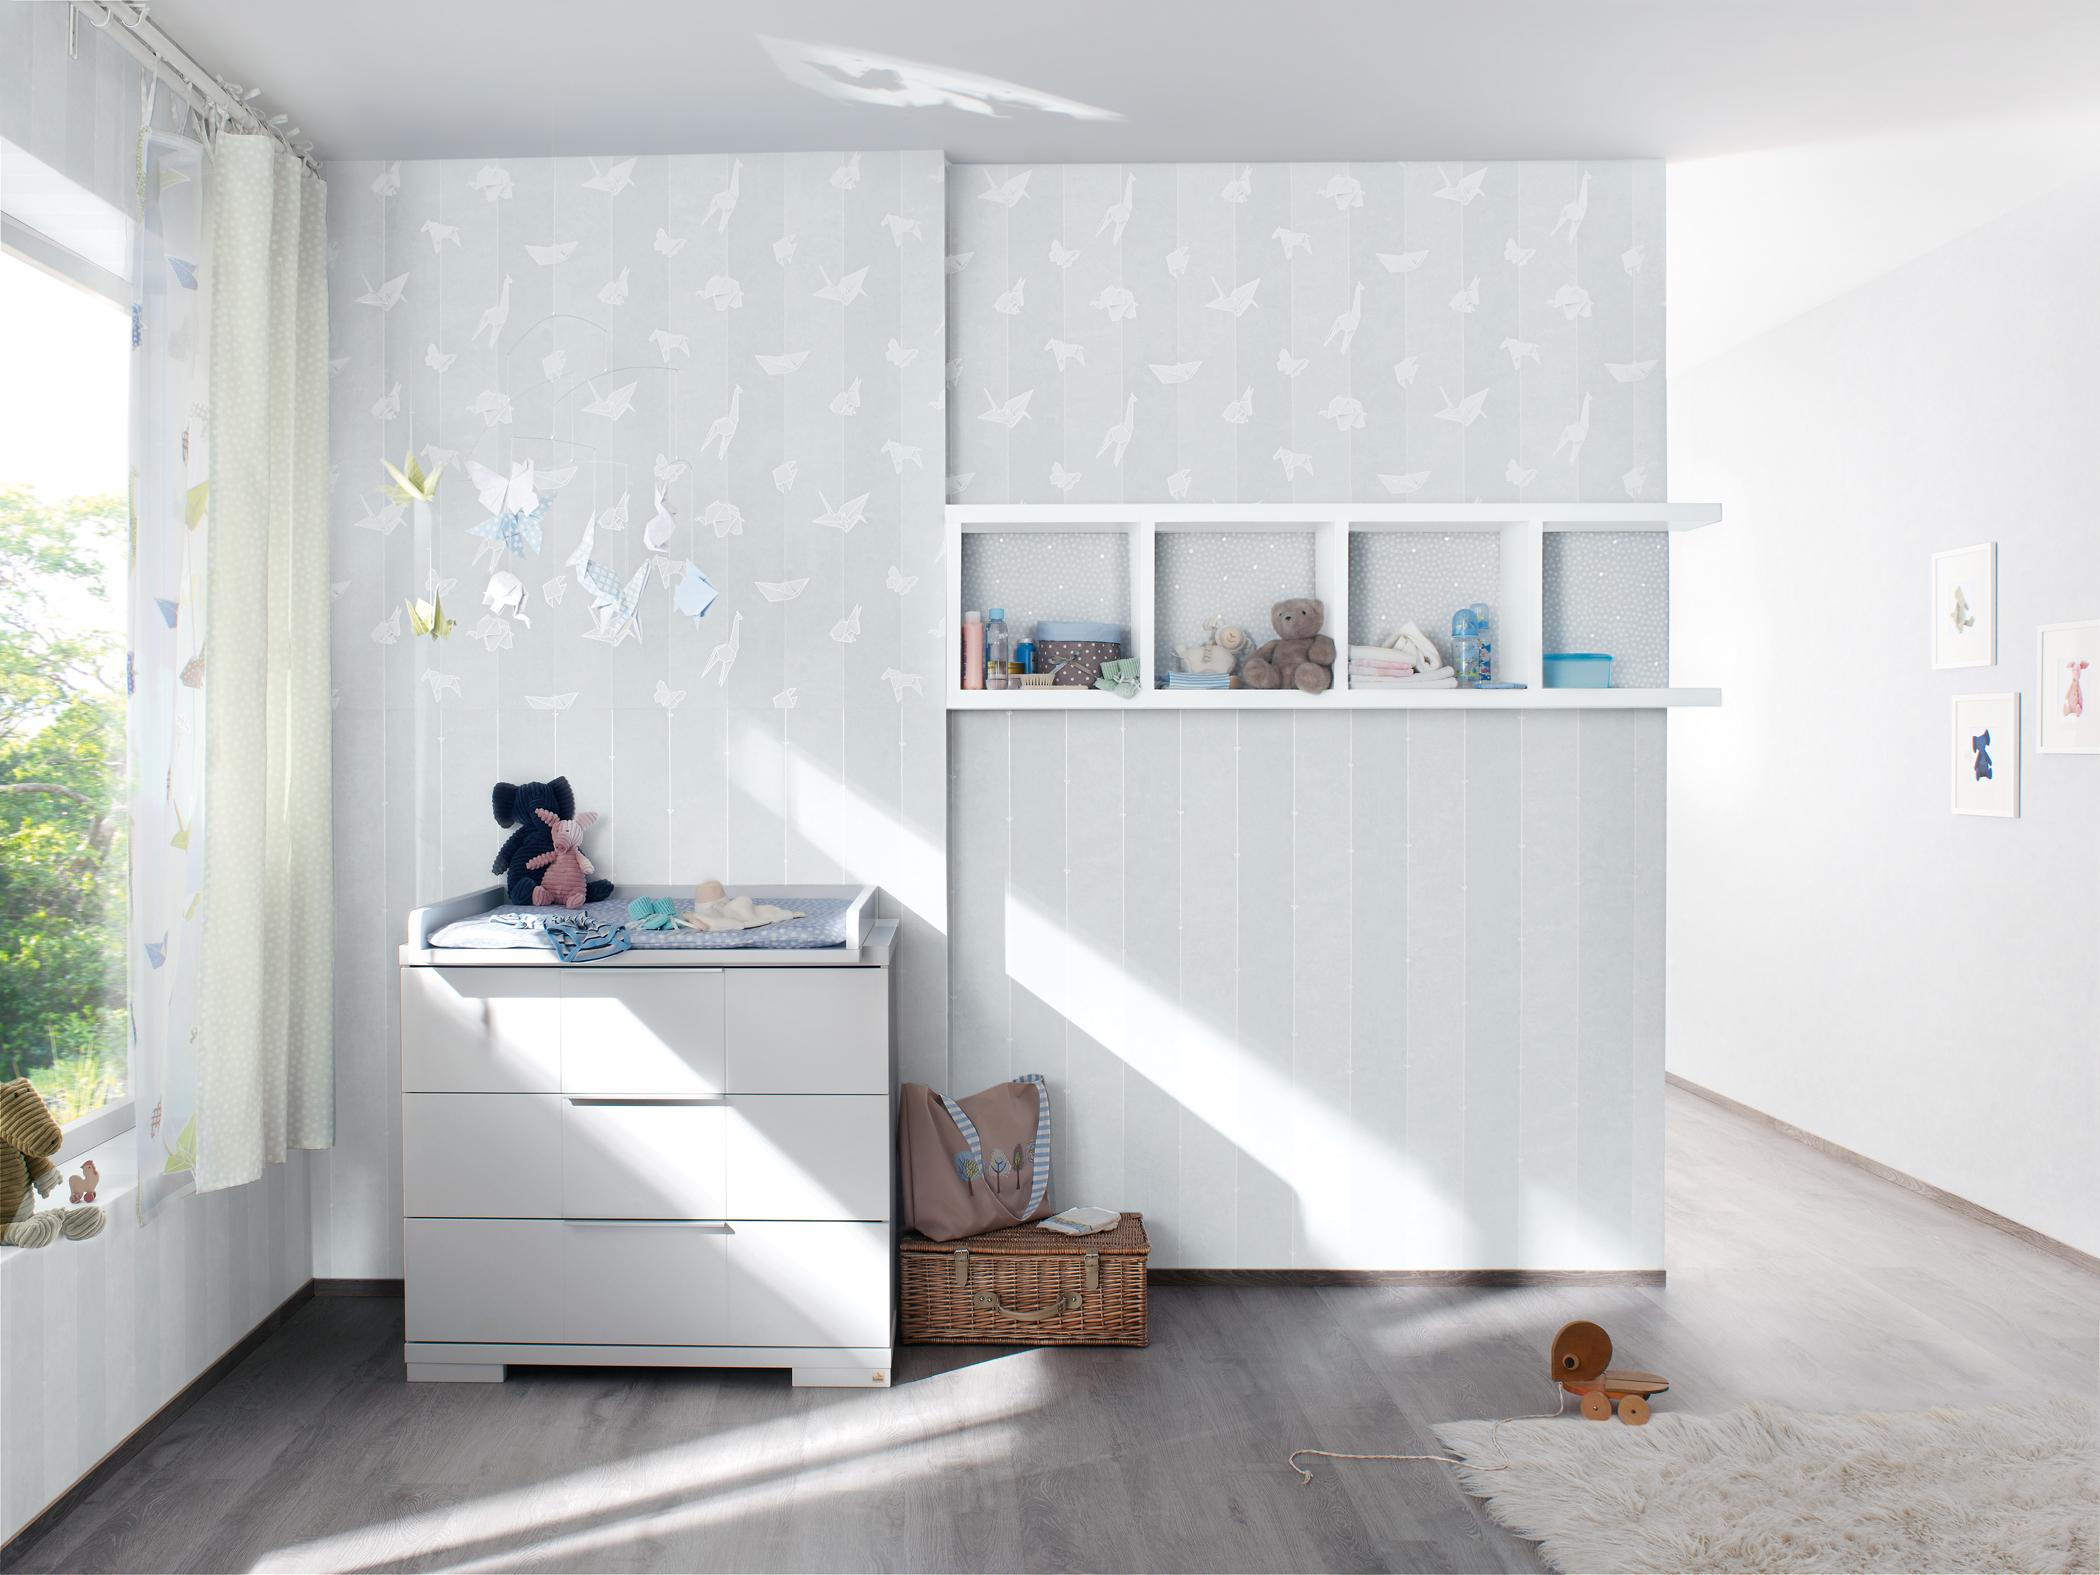 wei e wickelkommode im babyzimmer wandregal wandge. Black Bedroom Furniture Sets. Home Design Ideas